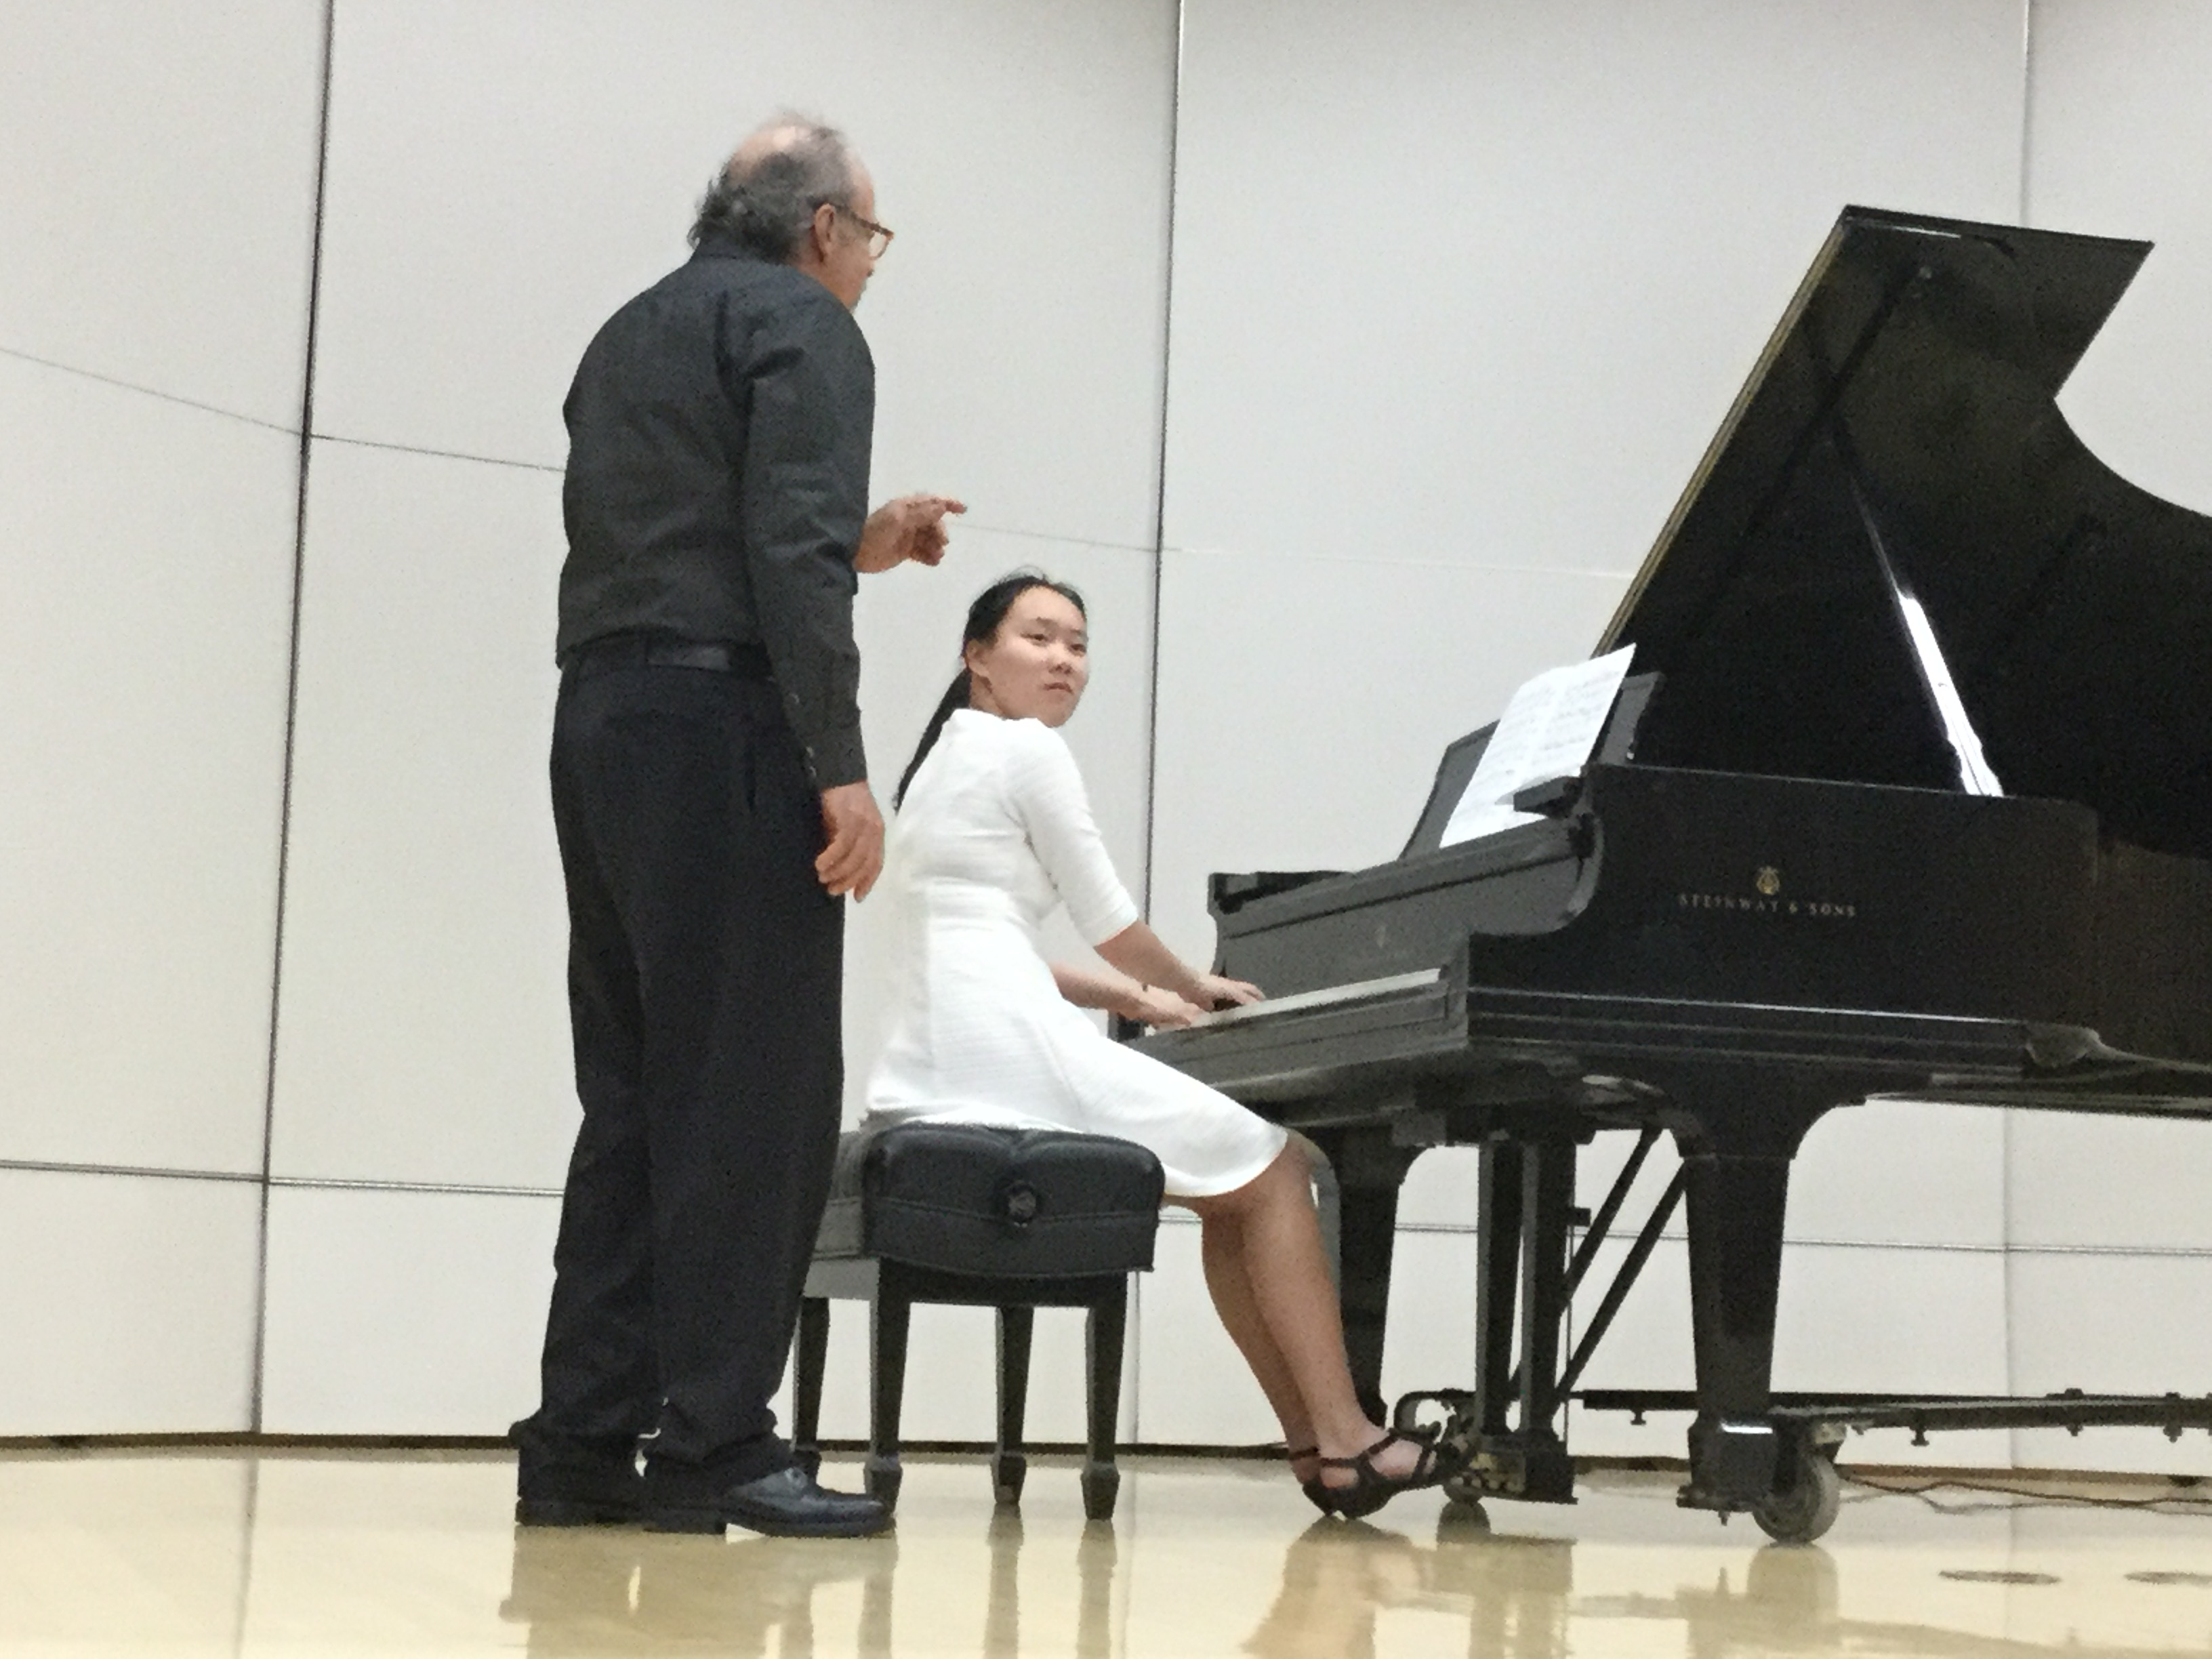 Pianist Tifany Wong